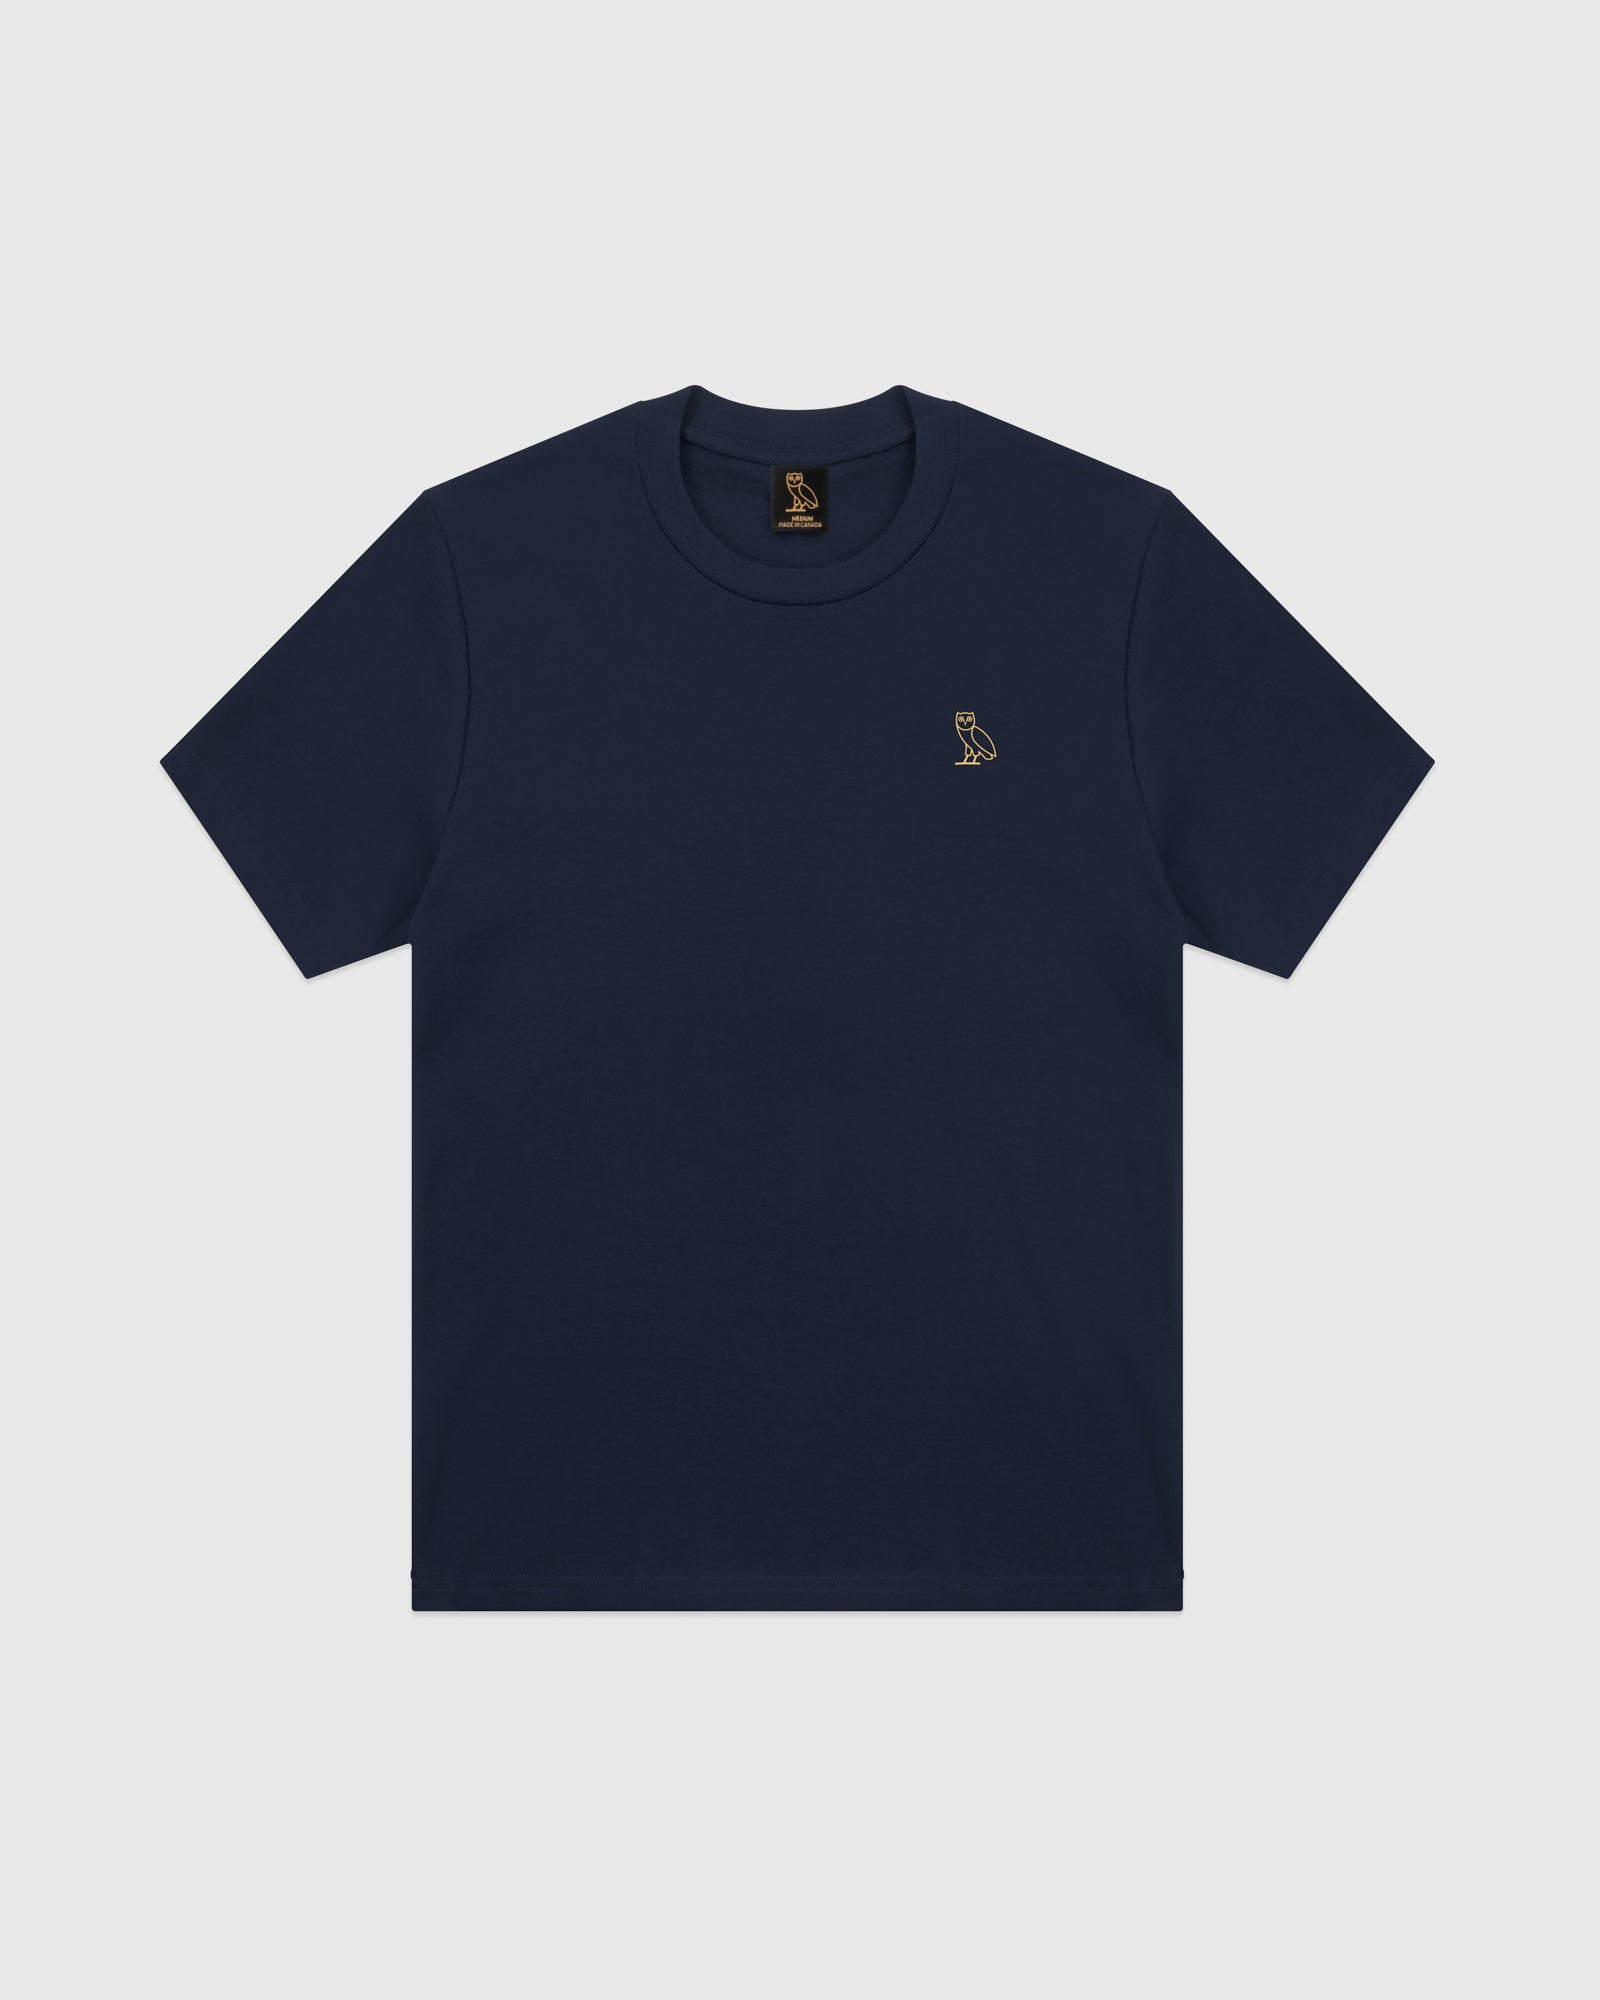 OWL T-SHIRT - NAVY